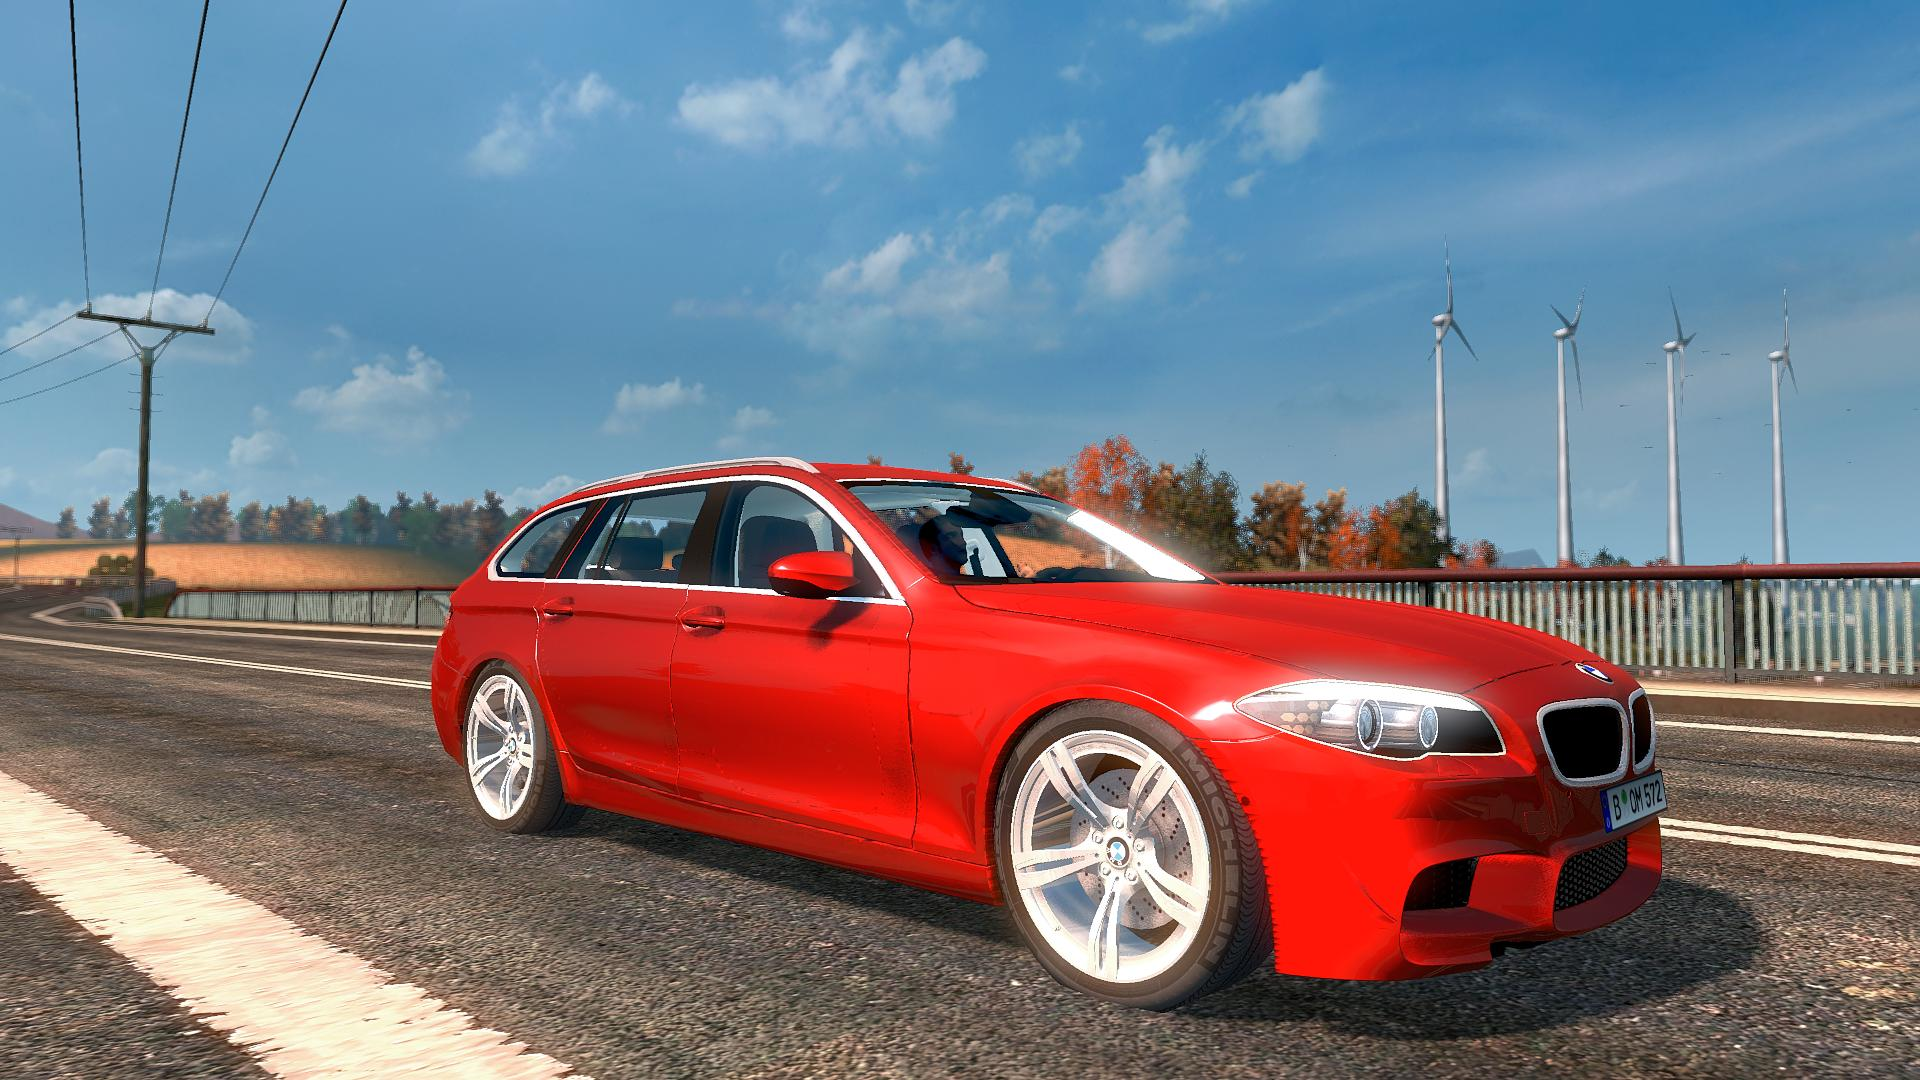 Image Of Bmw Car Mods Minecraft Mods BMW CAR MOD RIDE WITH STYLE